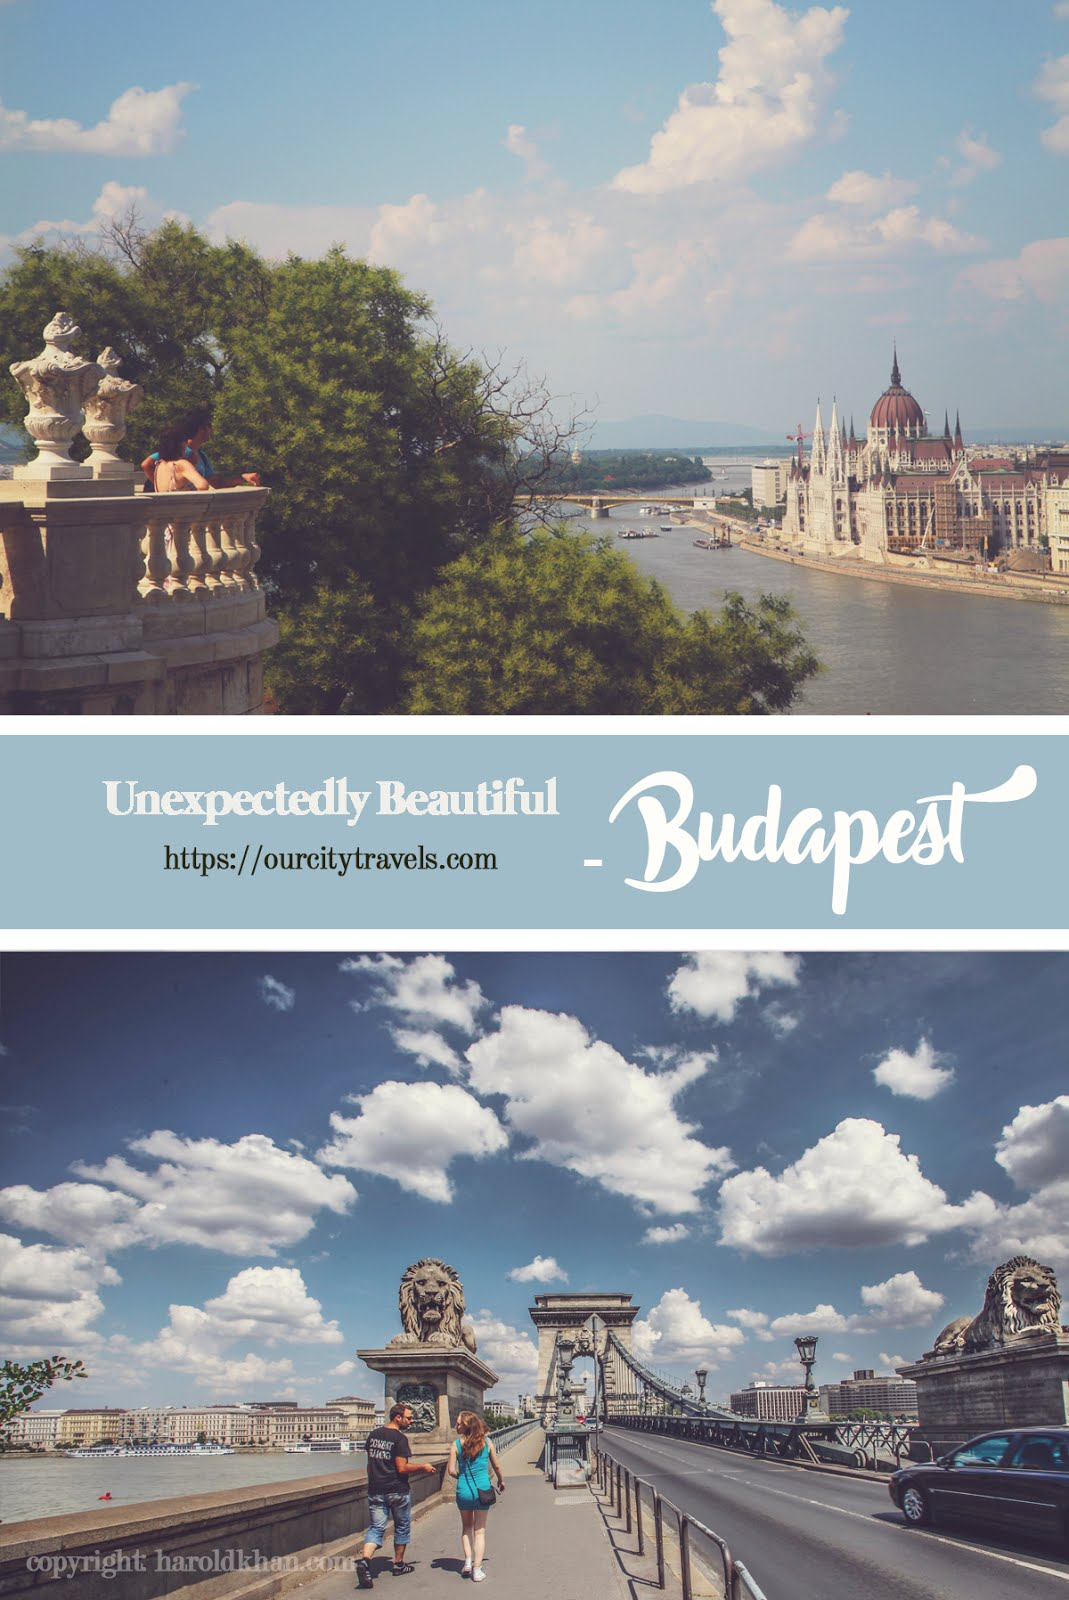 Unexpectedly Beautiful Budapest : clean, picturesque and familiar...these are my first impressions of Budapest. The clean streets are so very much like Vienna - only wider, the shopping streets like Paris - only cleaner but, it is unique in its own in terms of charm. Walking around, we felt safe.